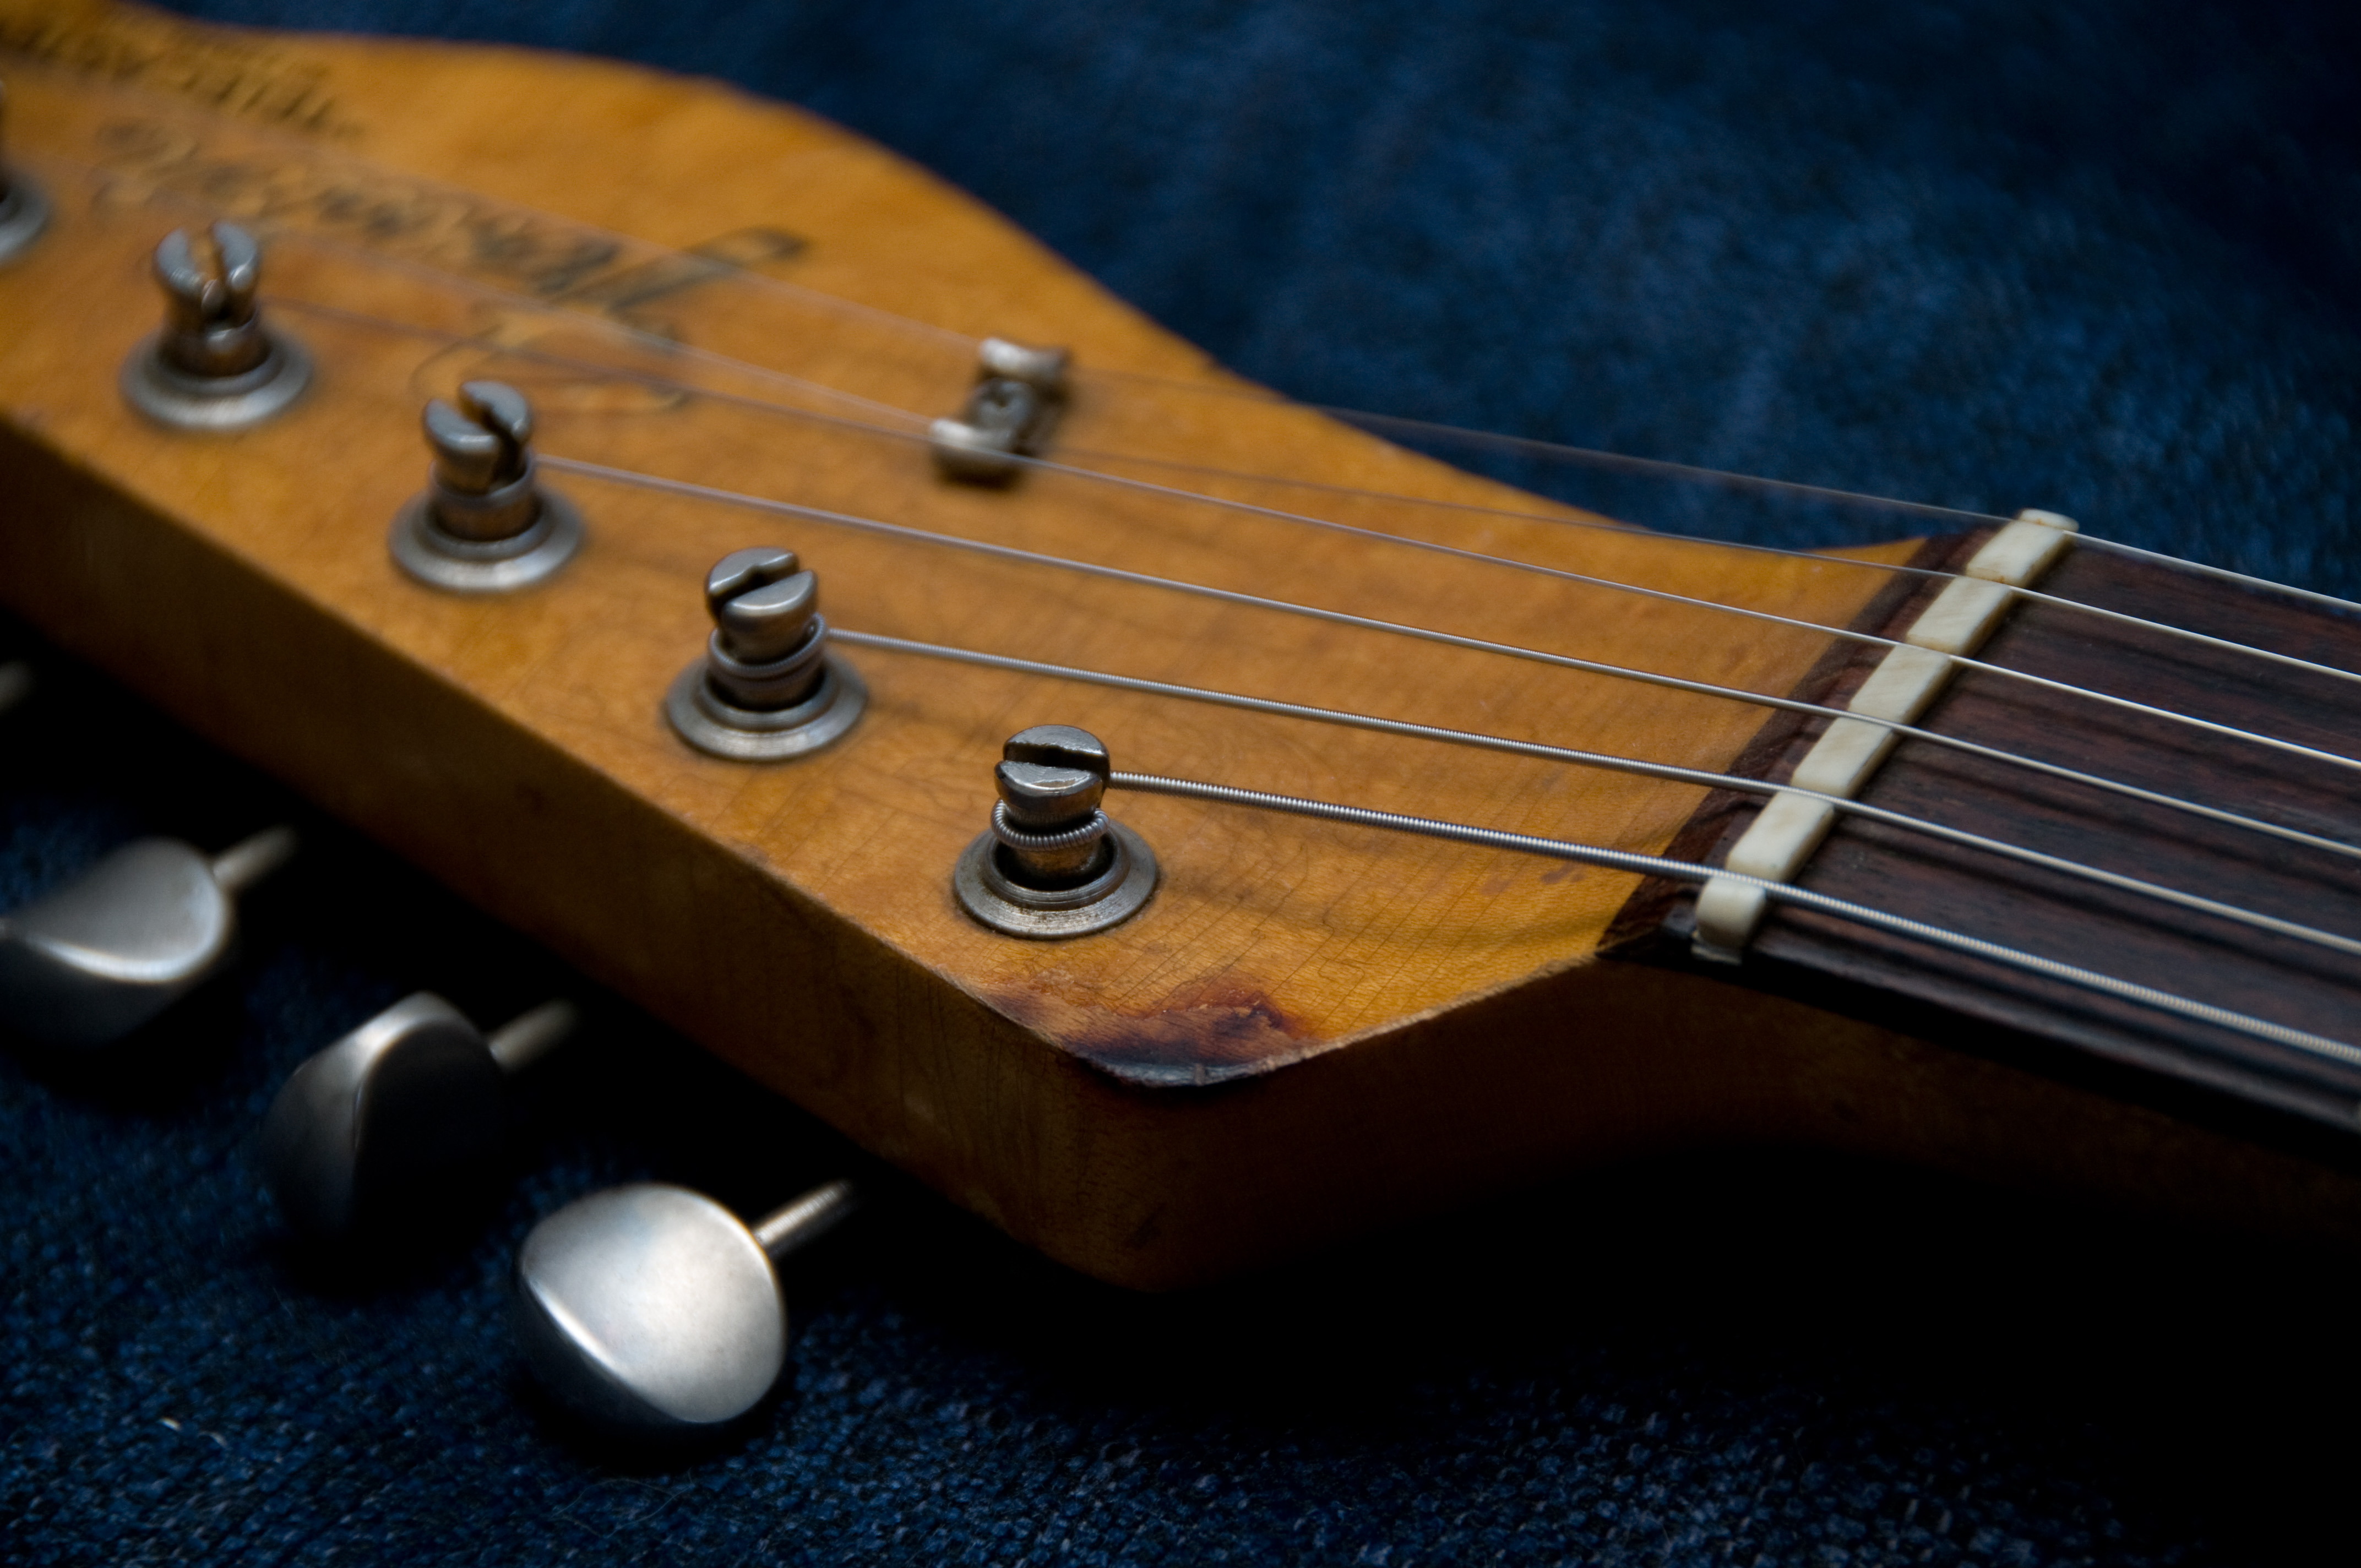 File:1966 Fender Telecaster (SN159266) headstock and browning.jpg ...